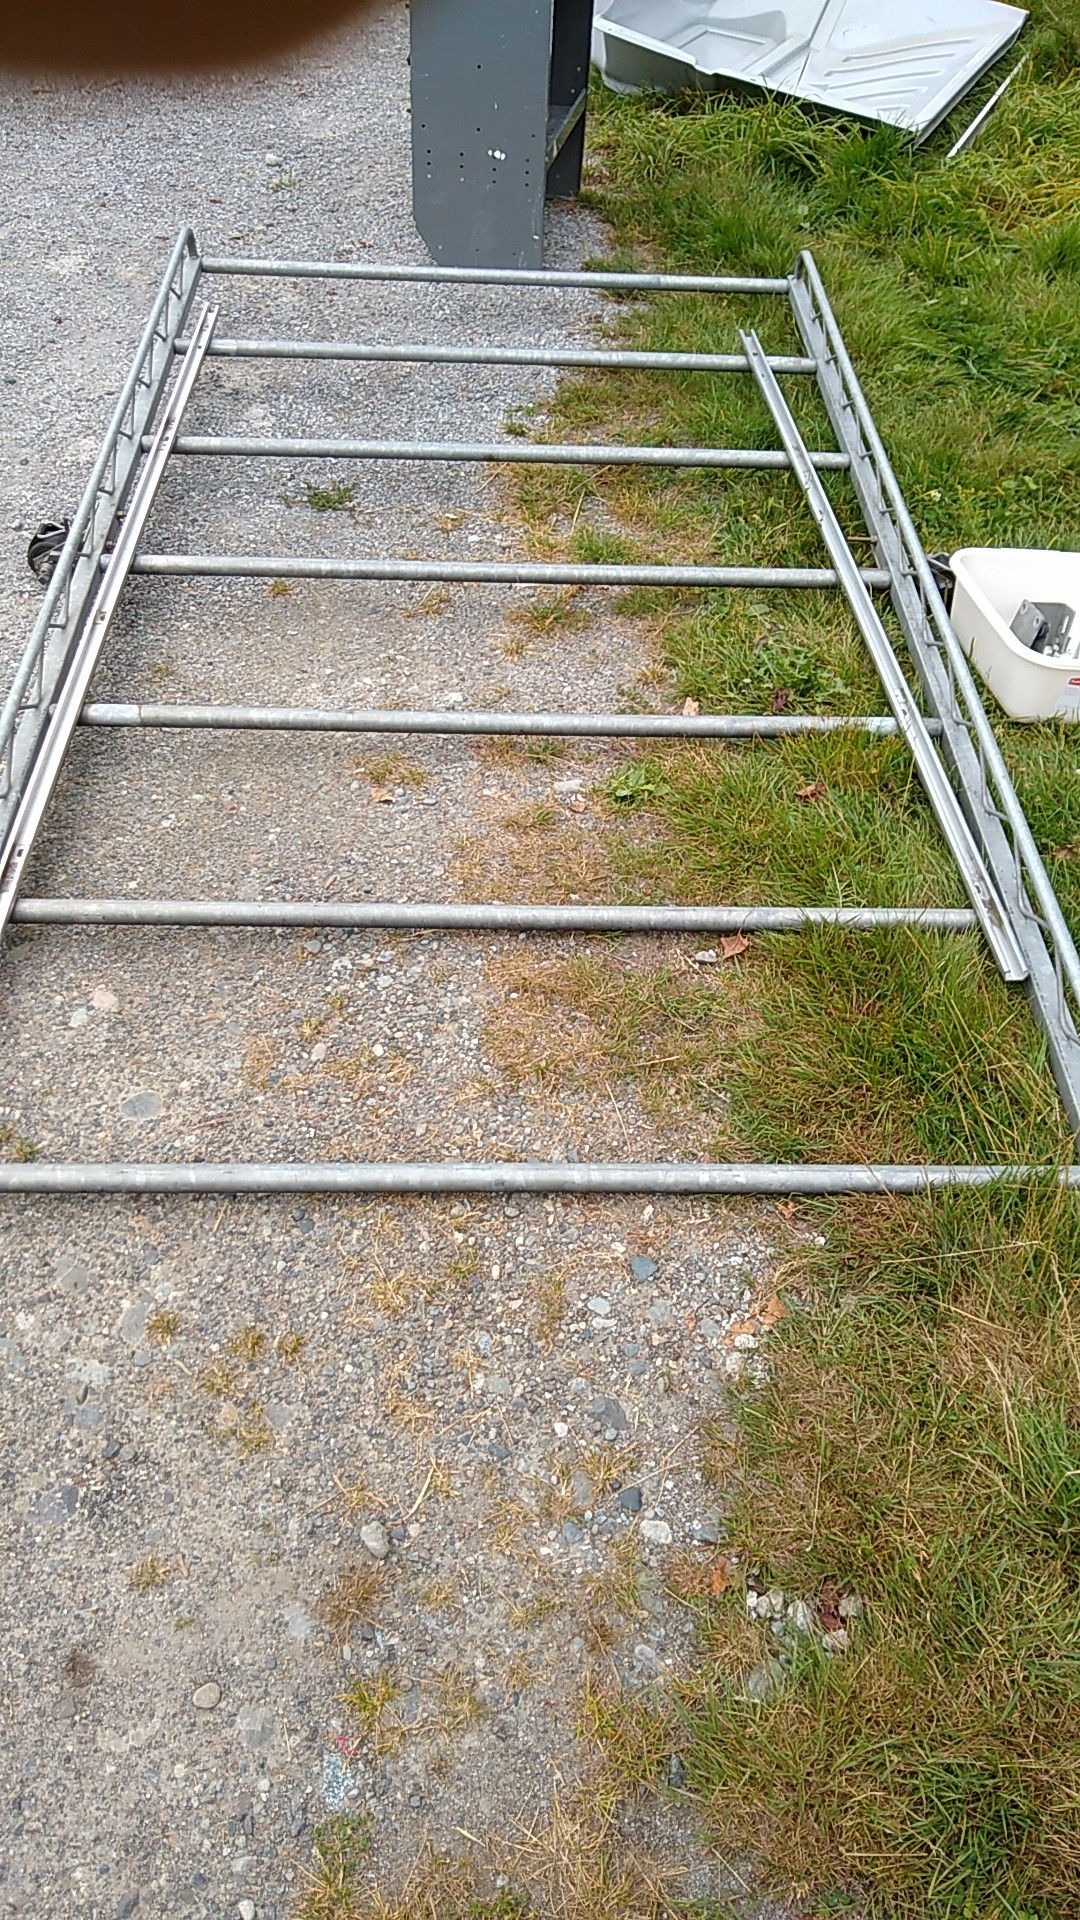 Ford Transit connect lumber and ladder rack